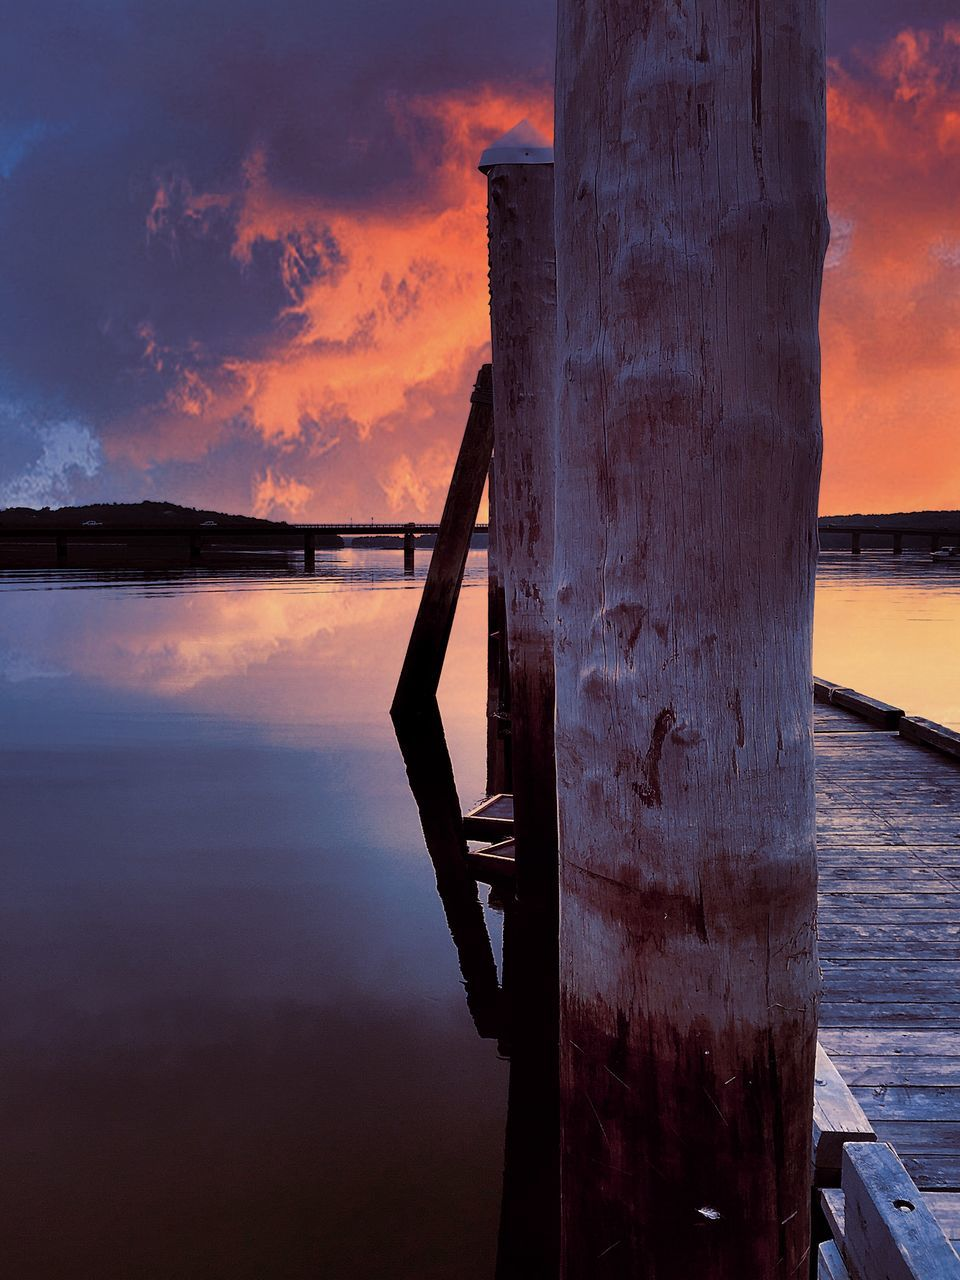 Wooden Post By Pier On Sea During Sunset